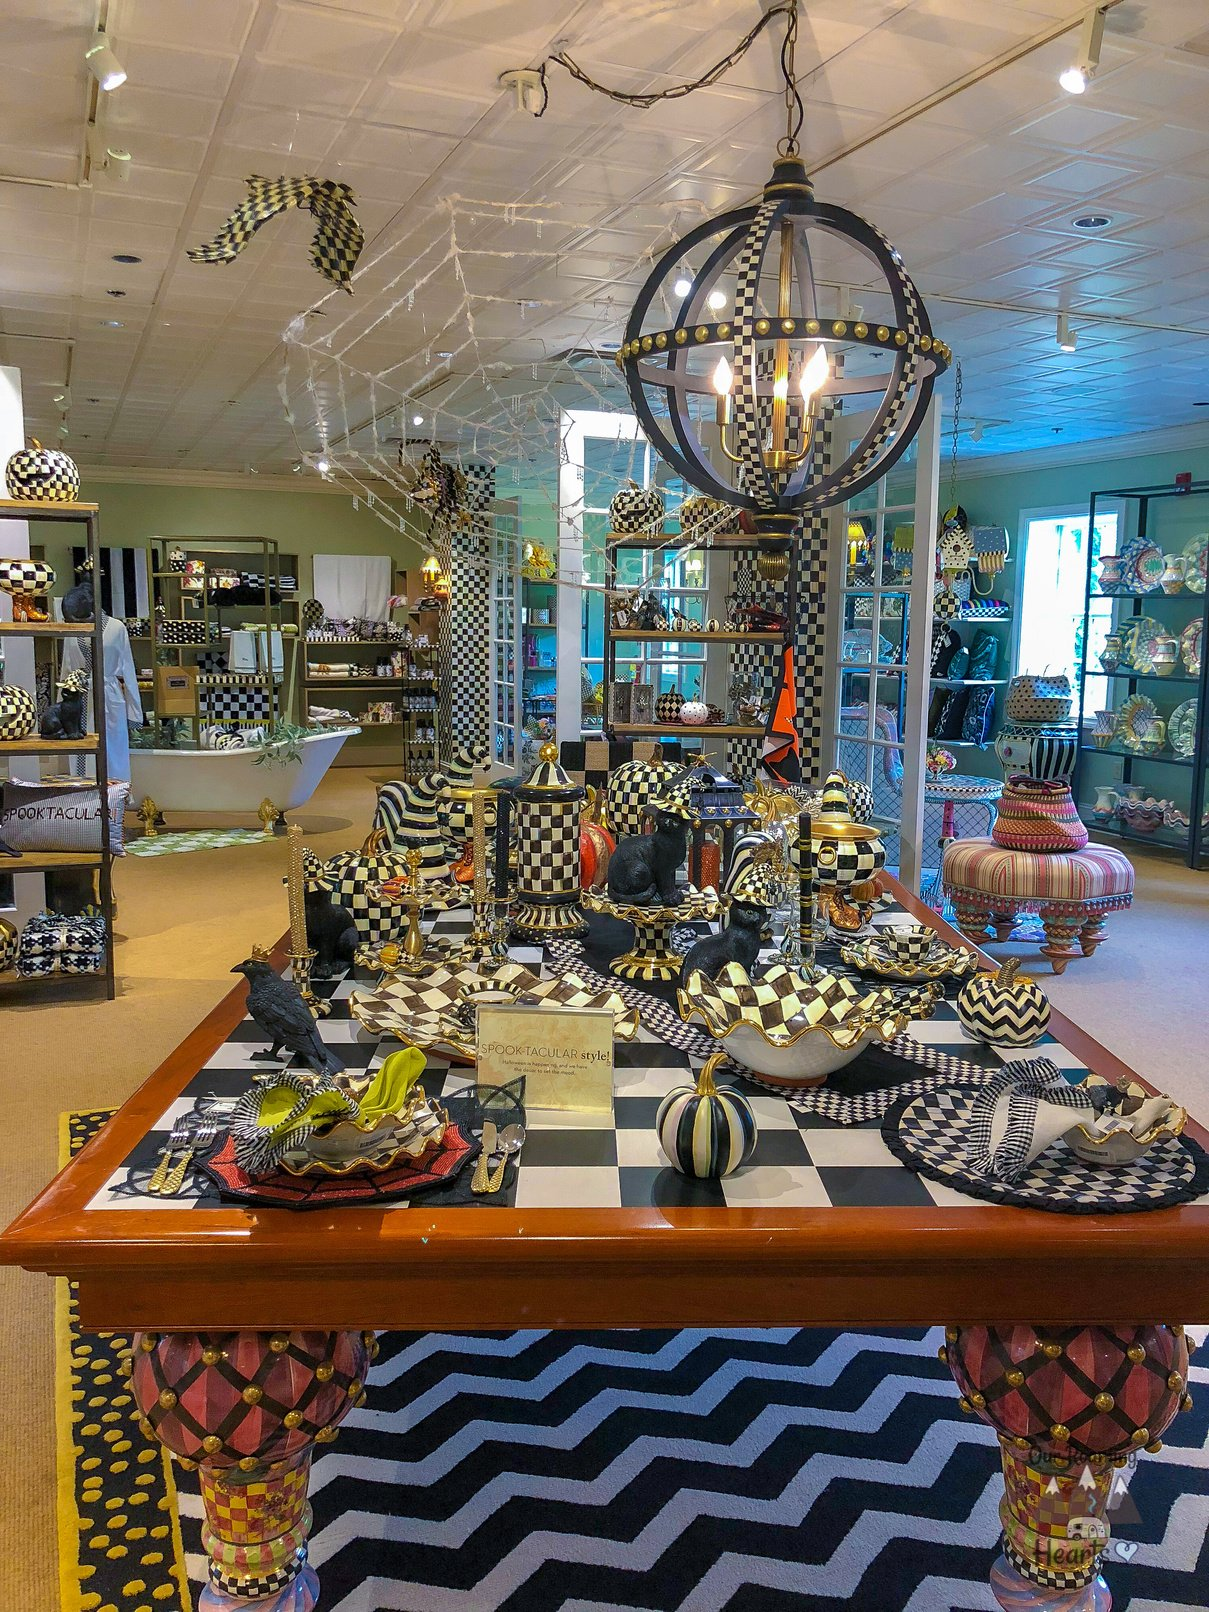 Mackenzie Childs Store - Things to do in Finger Lakes NY